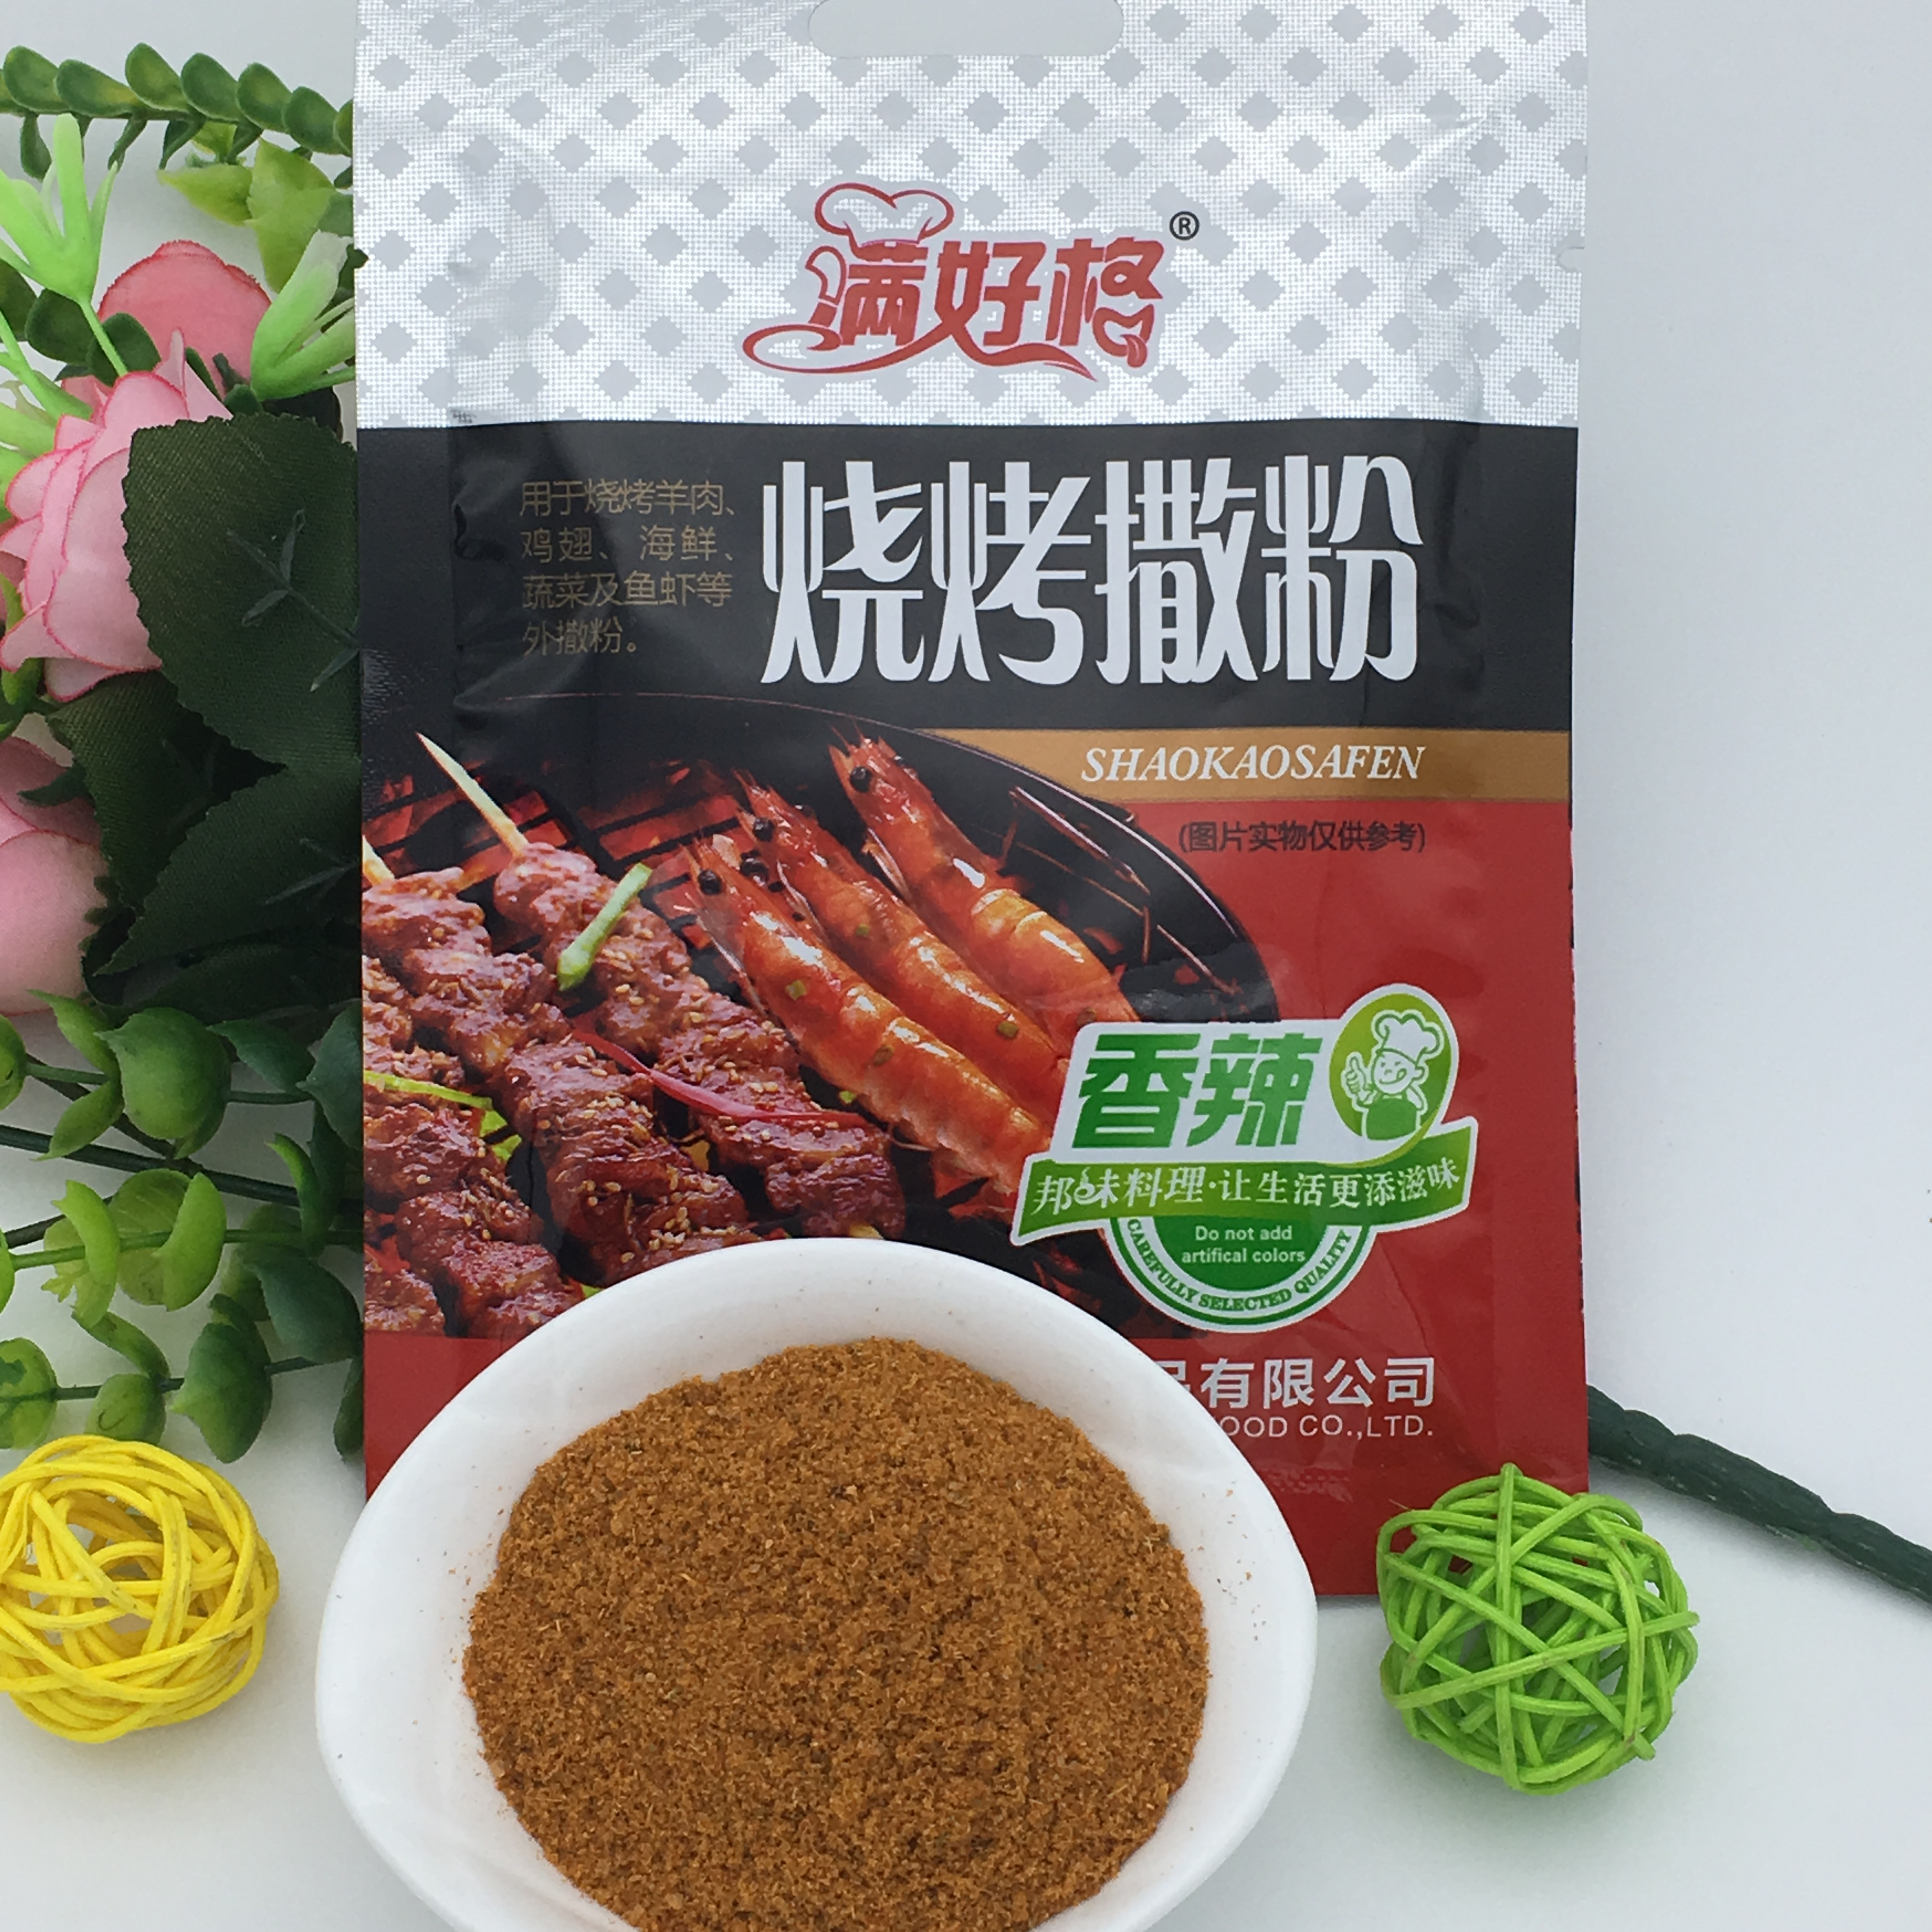 Barbecued mutton, beef, pork, chicken, seafood, vegetable, fish, etc. fried with cold sauce, powdered seasoning, spicy